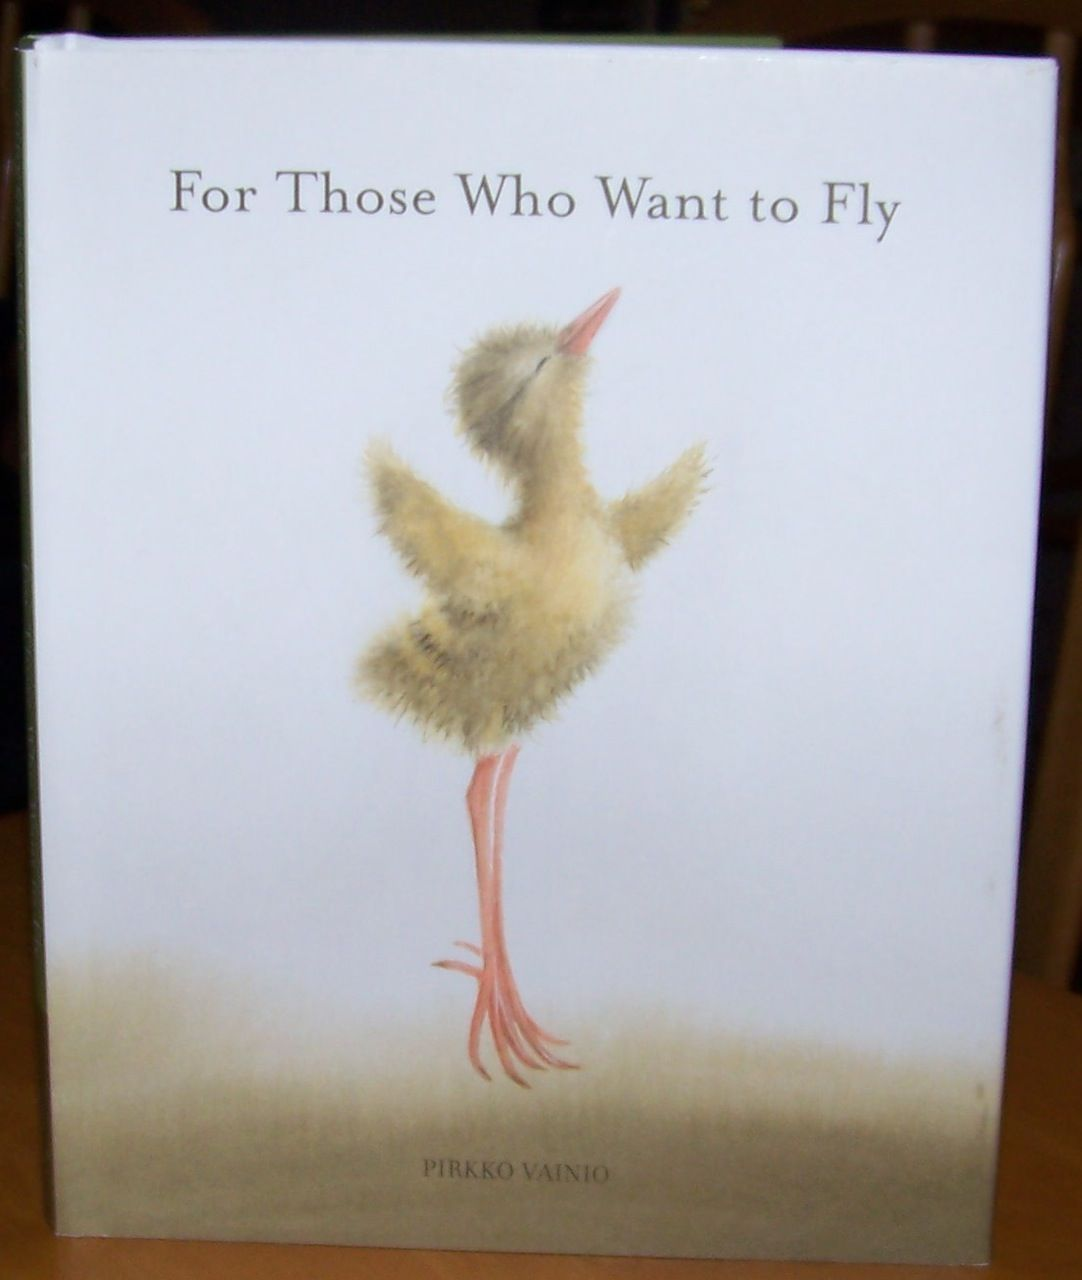 Inspirational Read - For Those Who Want To Fly